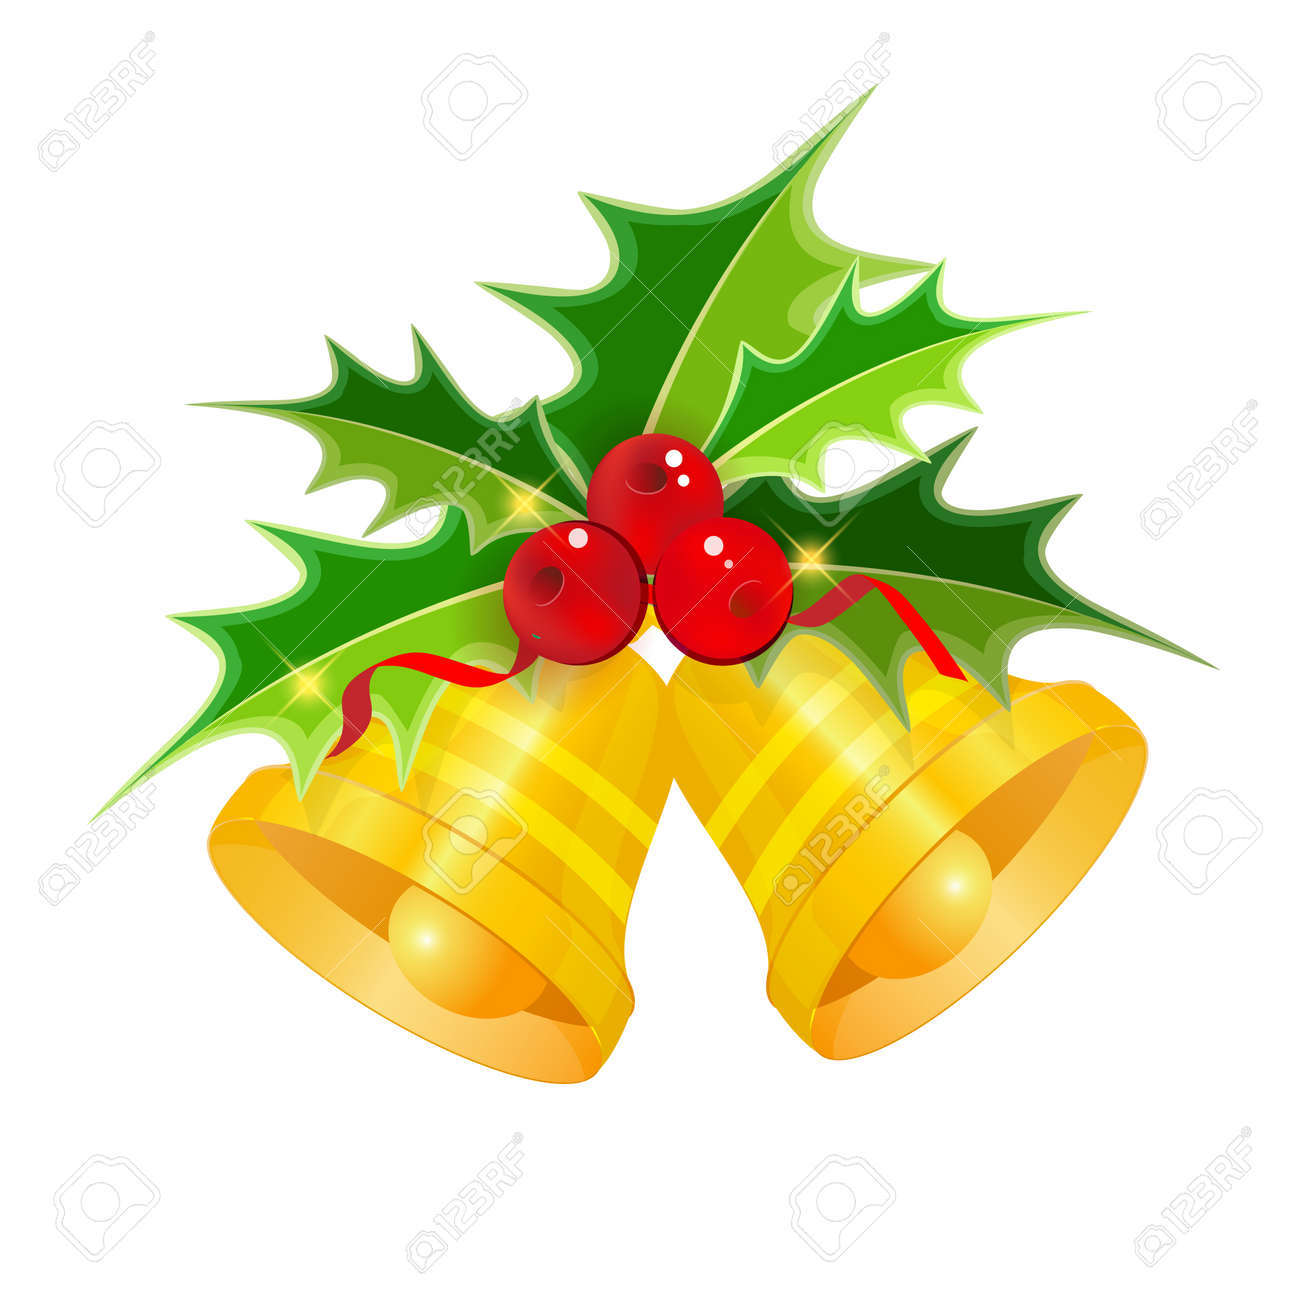 Vector Golden Christmas bells with Holly isolated on white background - 159648323